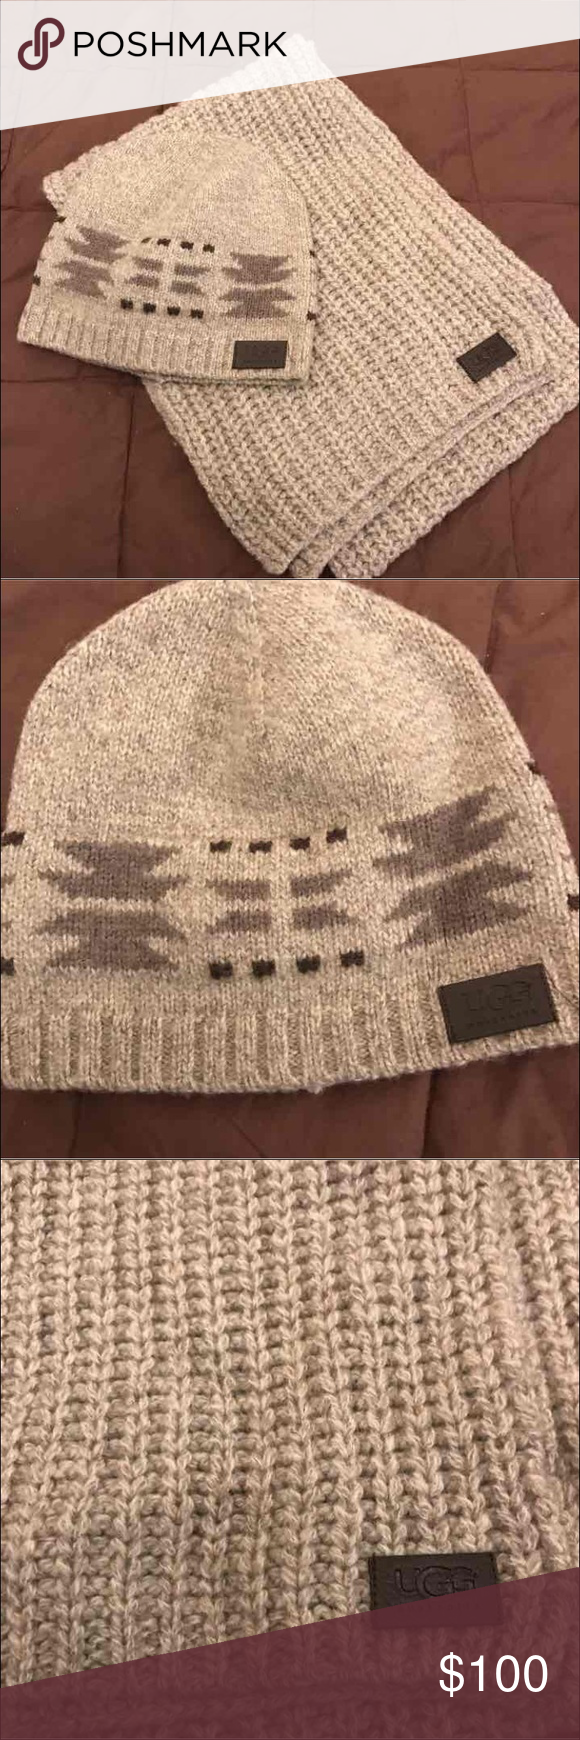 bdf94437b1b UGG HAT   SCARF SET Brand New without Tags. Thick wool scarf. Unisex.  64x10. PRICE FIRM UGG Accessories